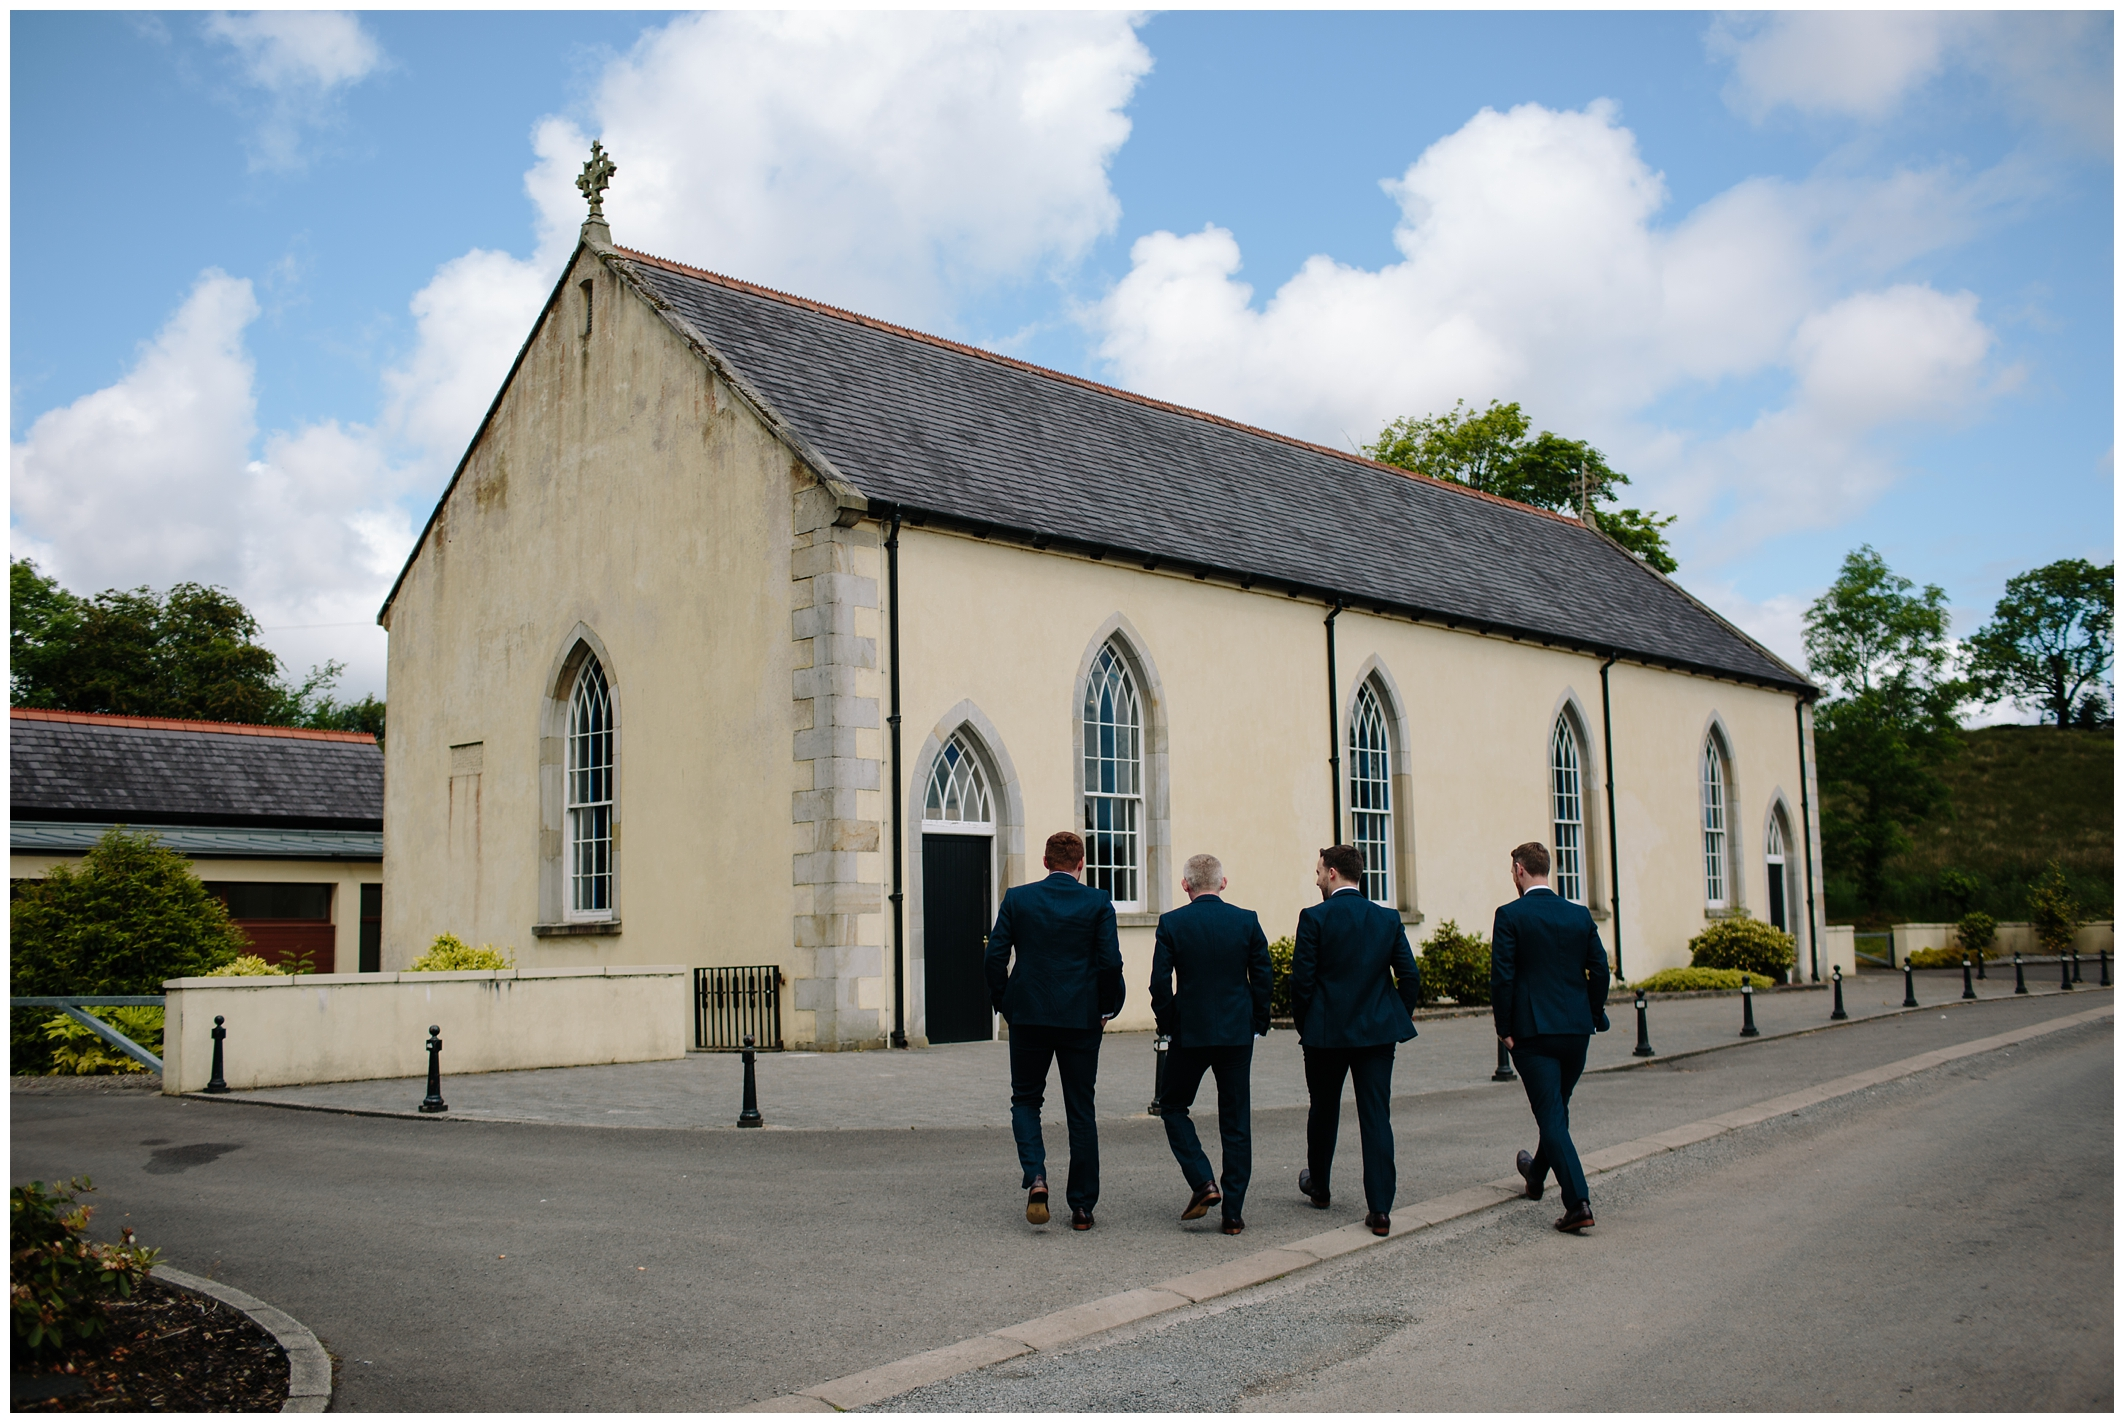 sinead_emmet_farnham_estate_wedding_jude_browne_photography_0047.jpg